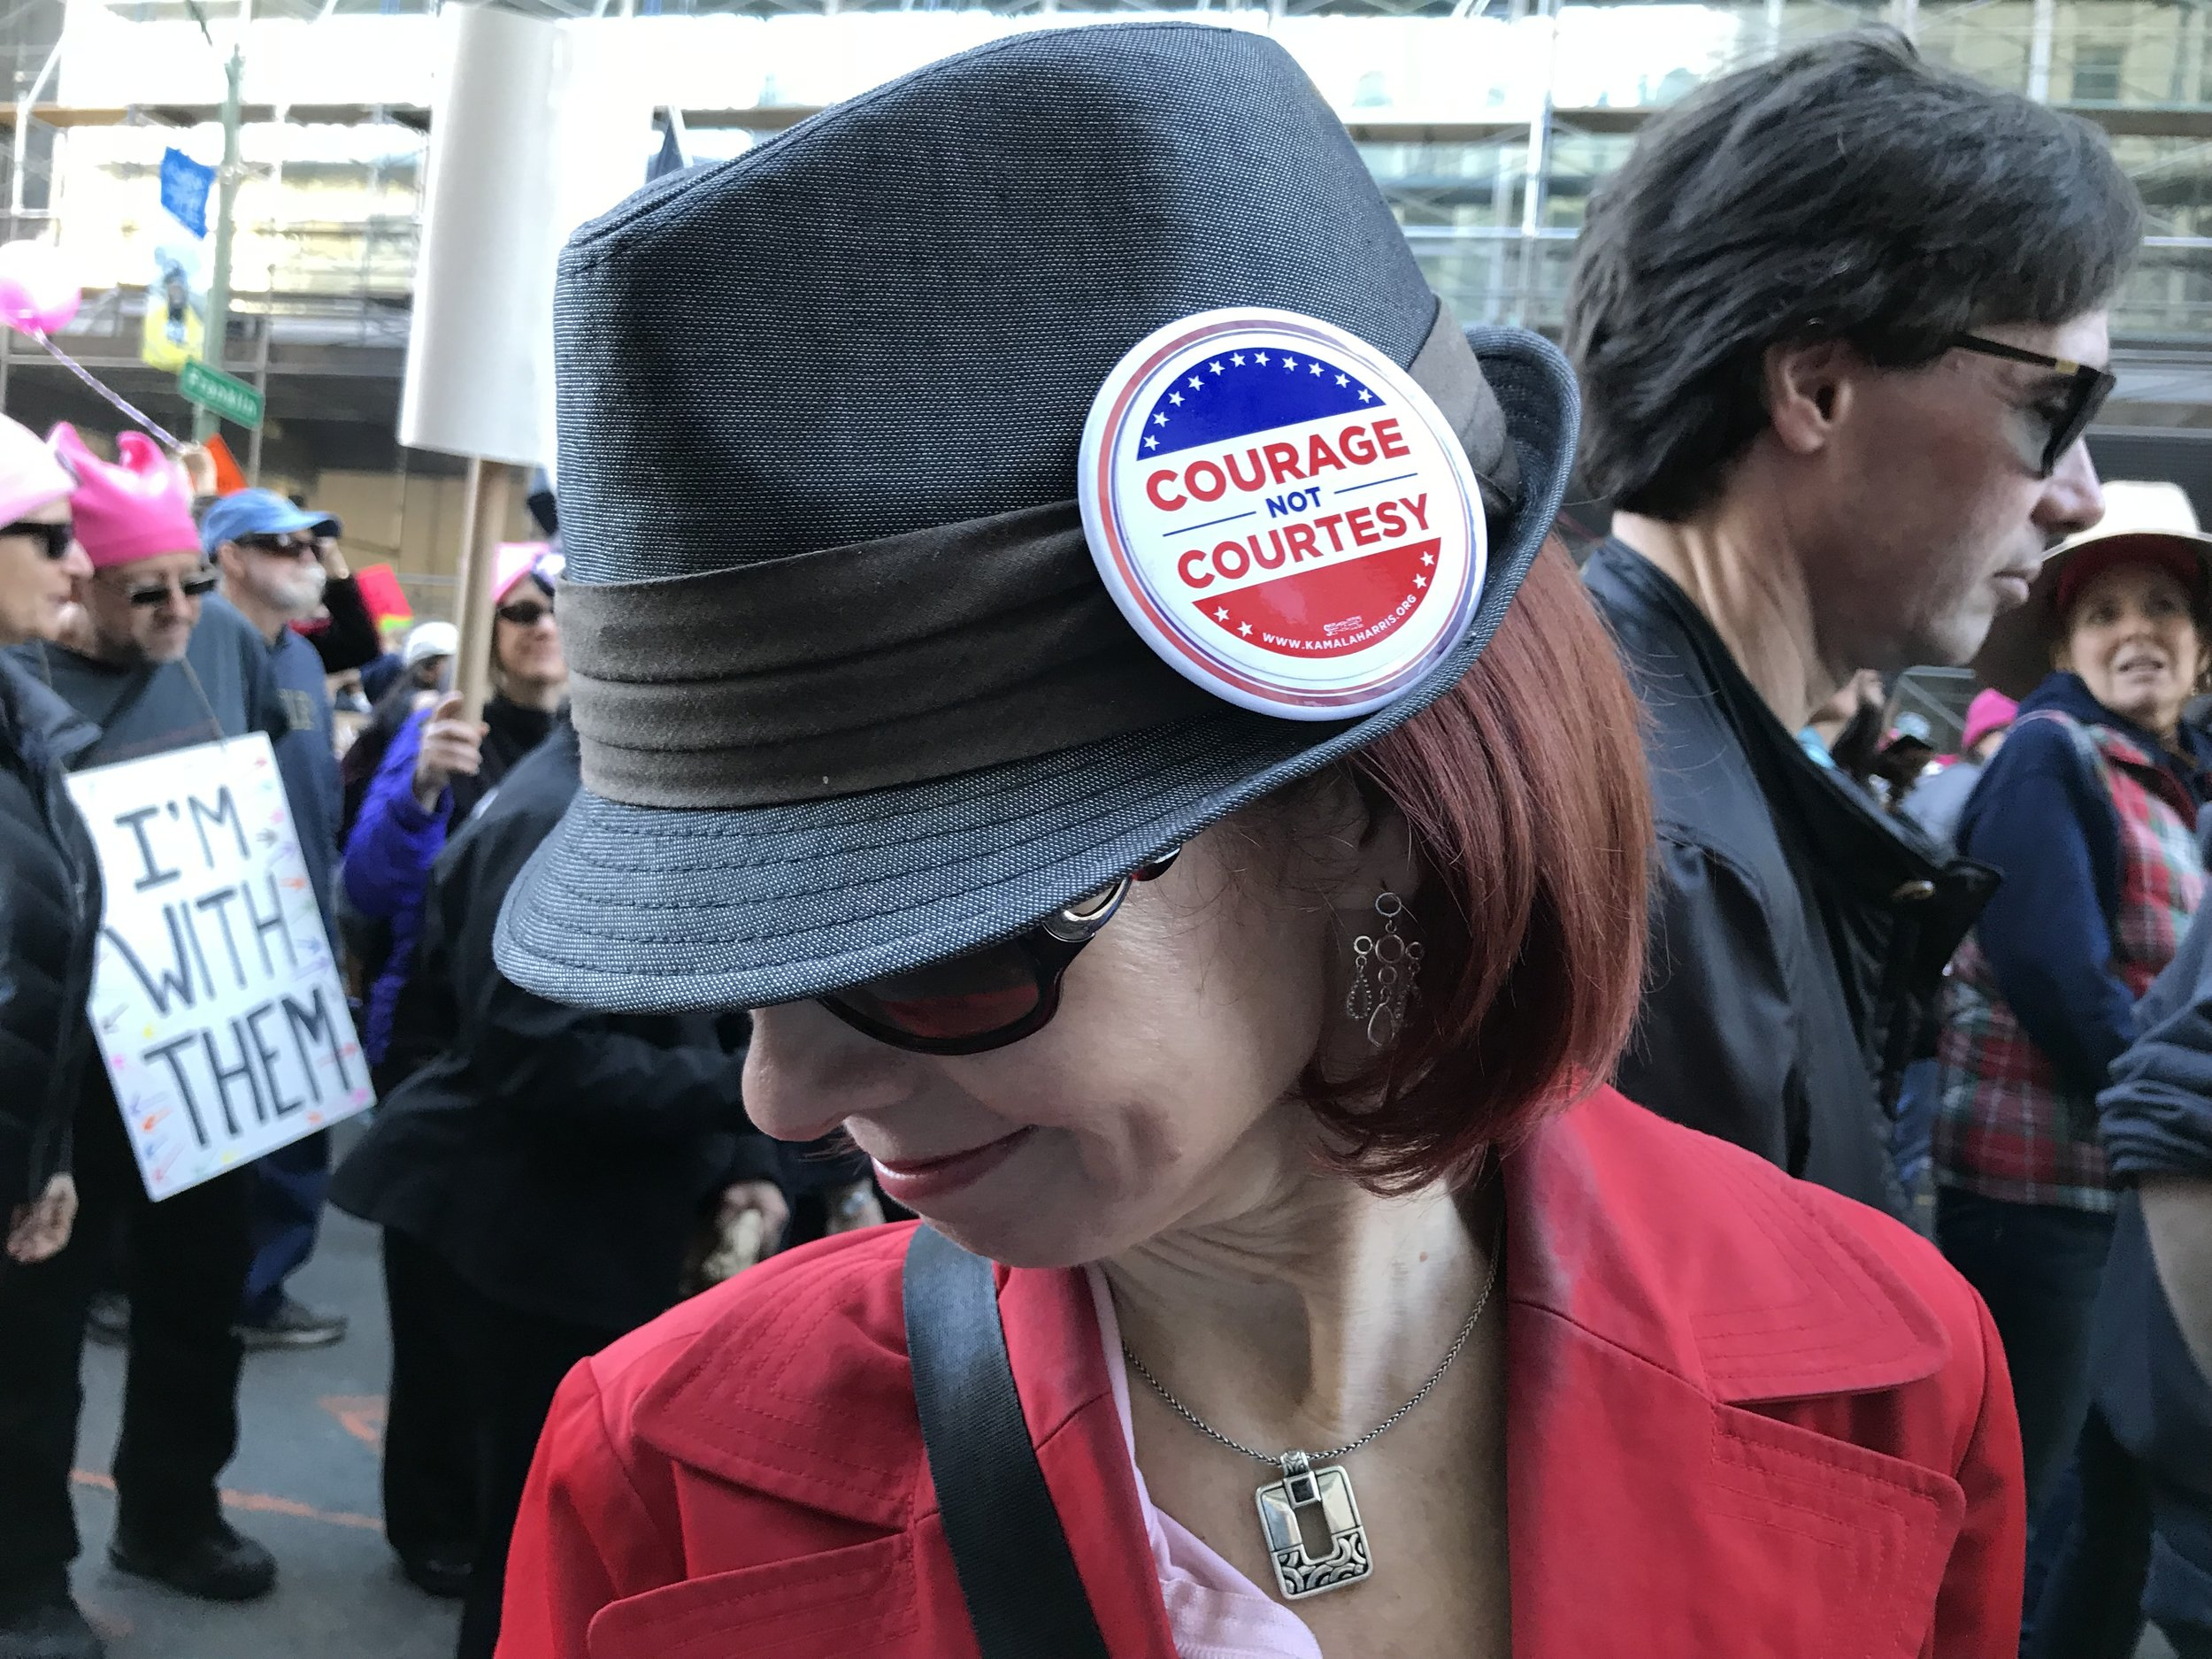 CADC Member Kim poses with the Kamala Harris campaign button she's chosen to wear to the Women's March. Photo Credit: Julie Casey